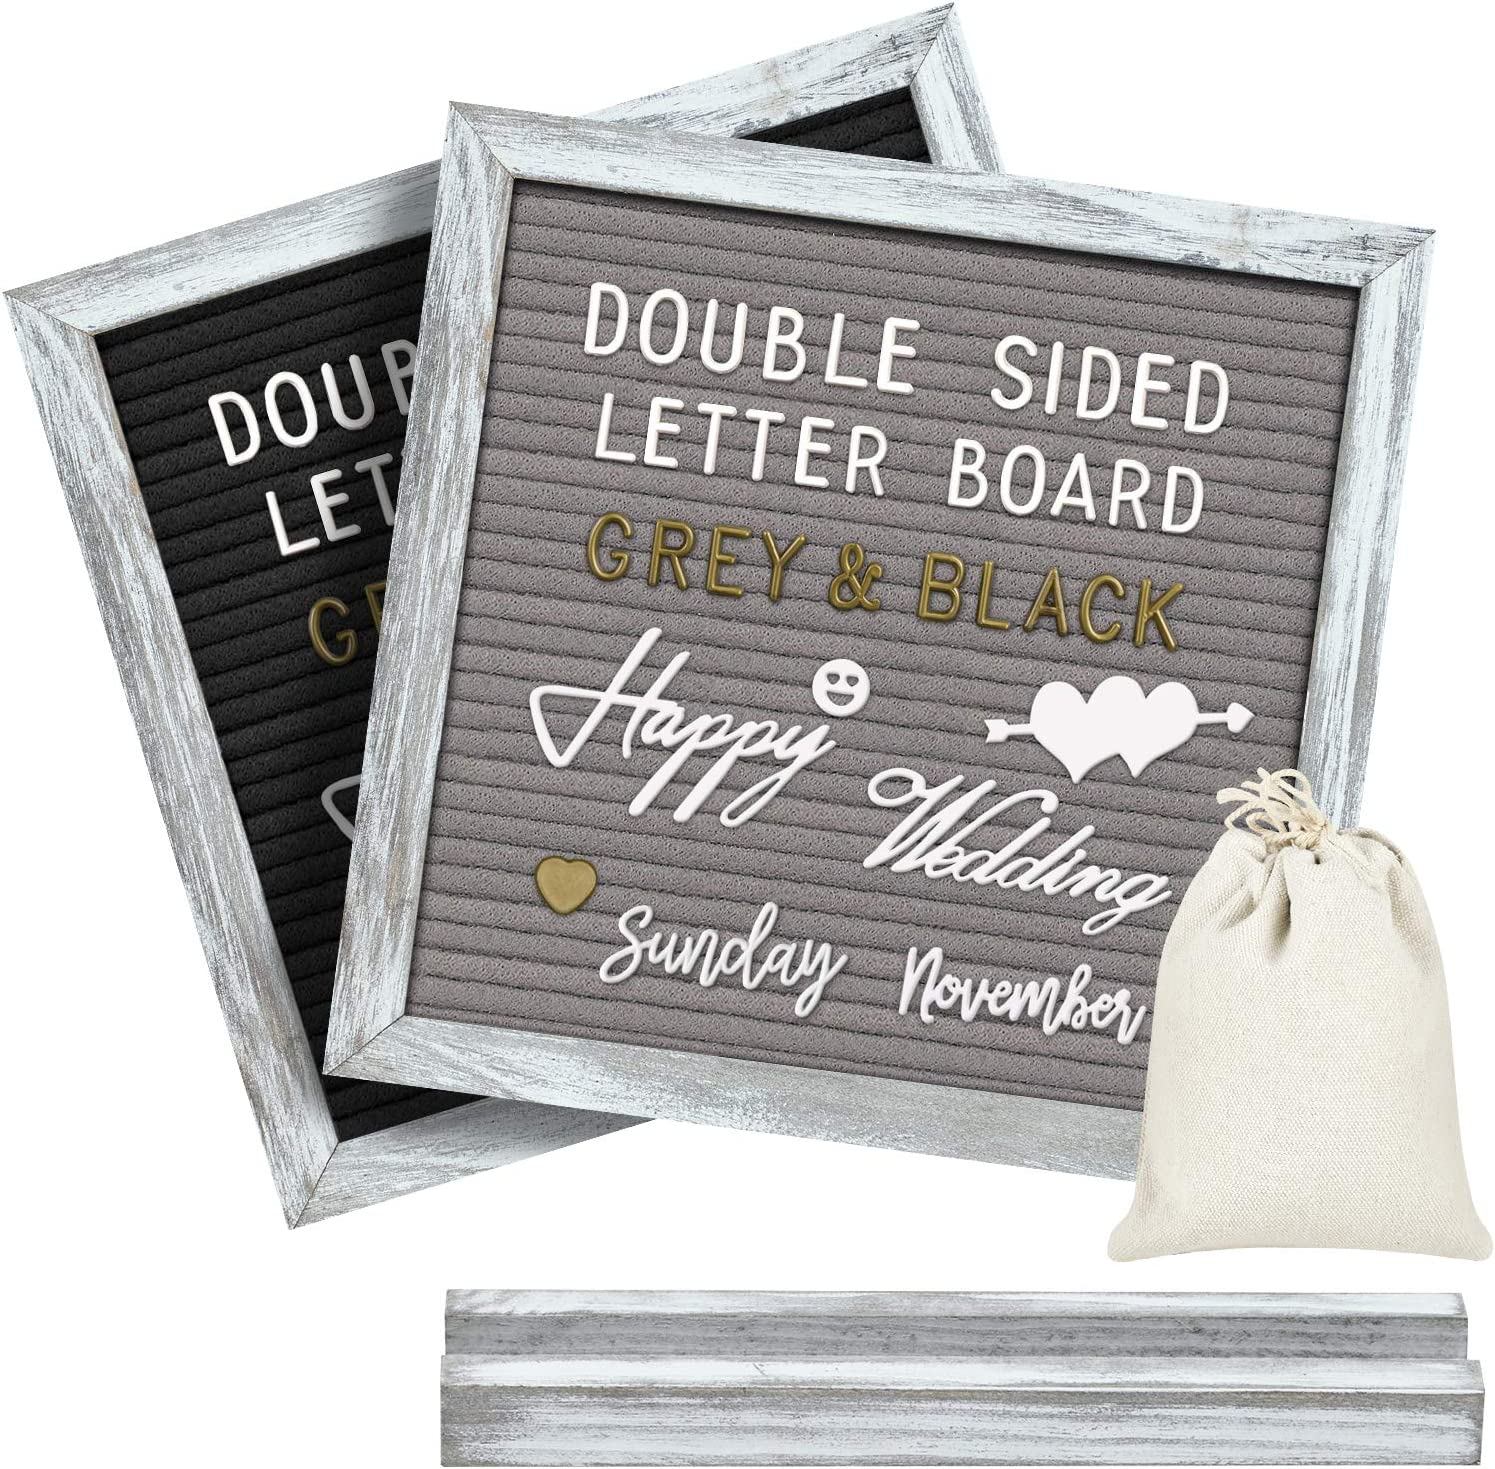 Gelibo Double Sided Letter Board with 750 Precut White & Gold Letters,Months & Days & Extra Cursive Words, Wall & Tabletop Display, Letters Organizer Box (Cyan Rustic 10x10)